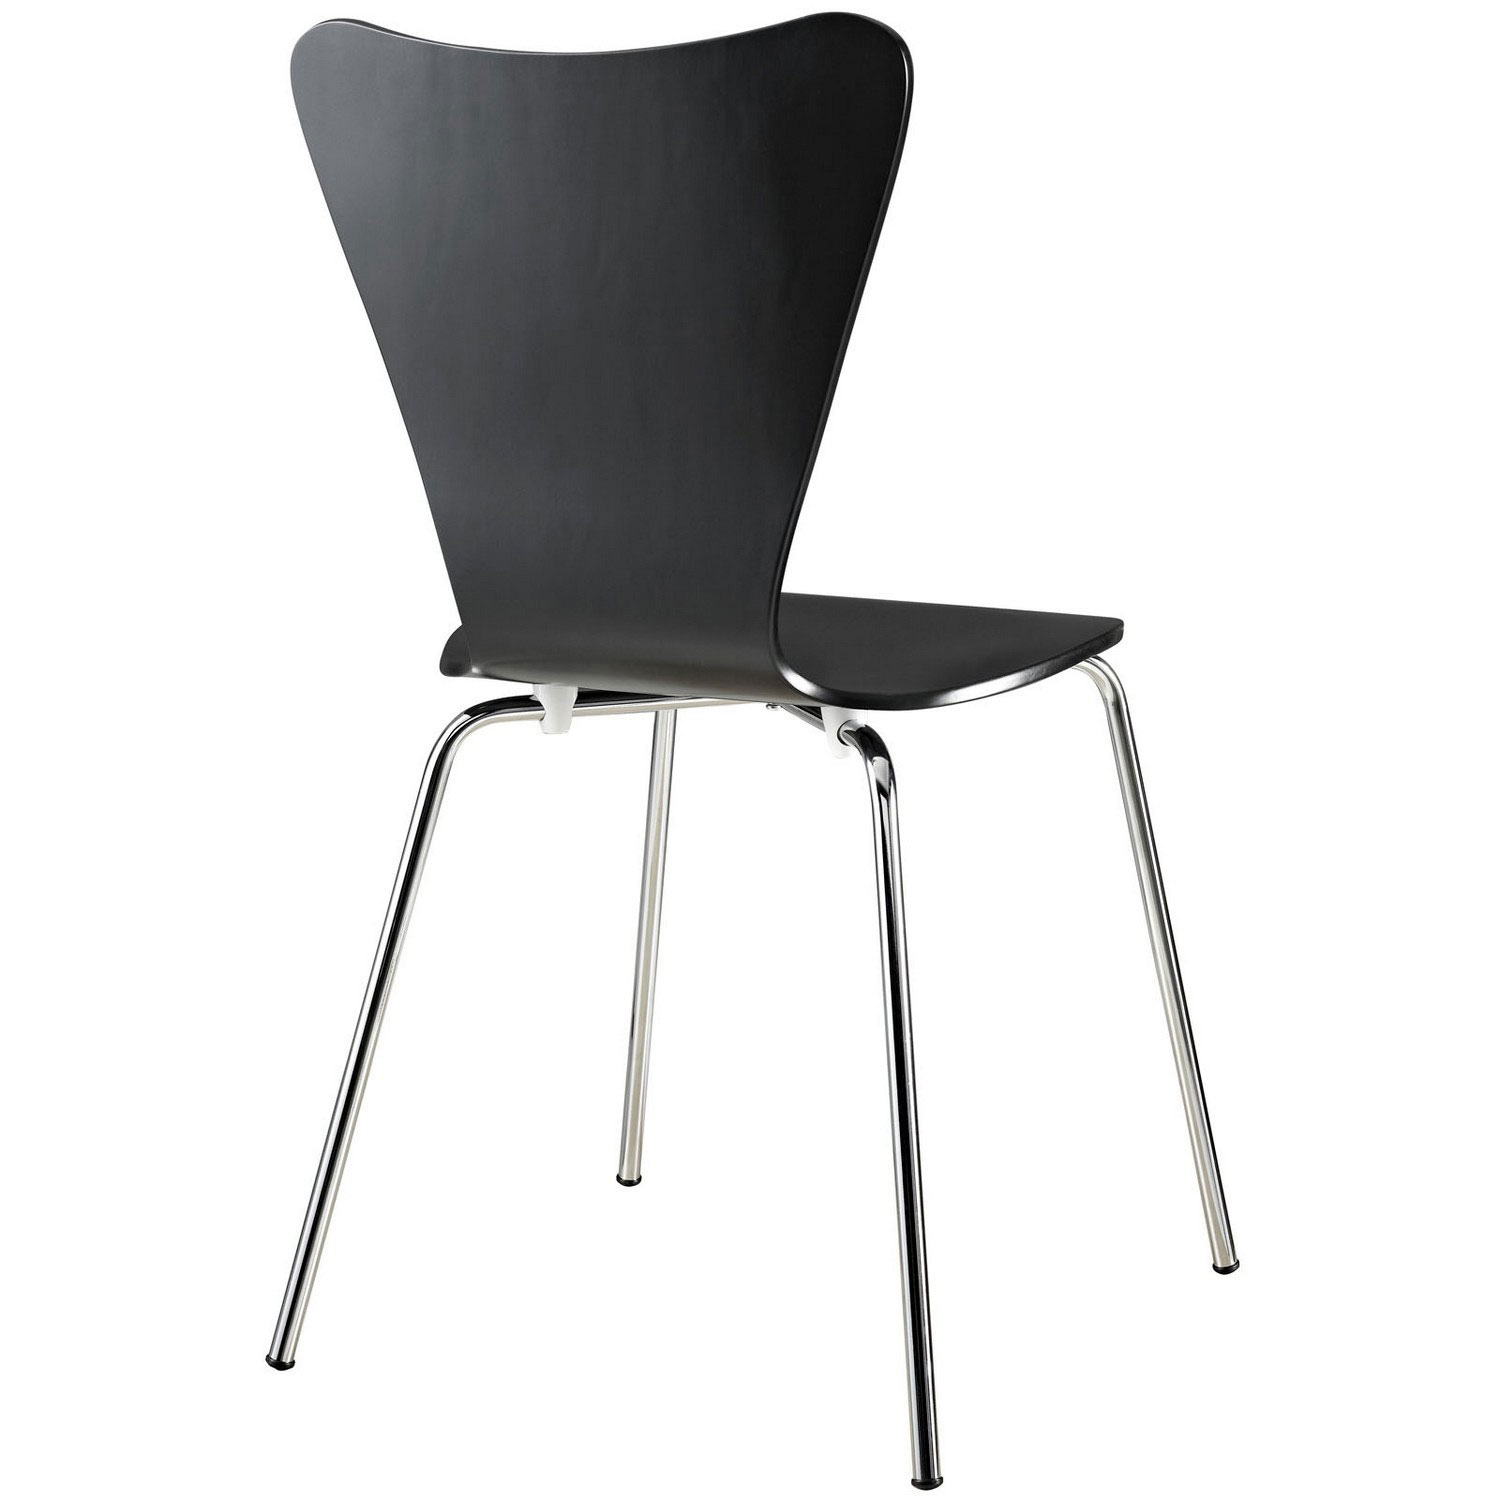 Modway Ernie Dining Side Chair - Black